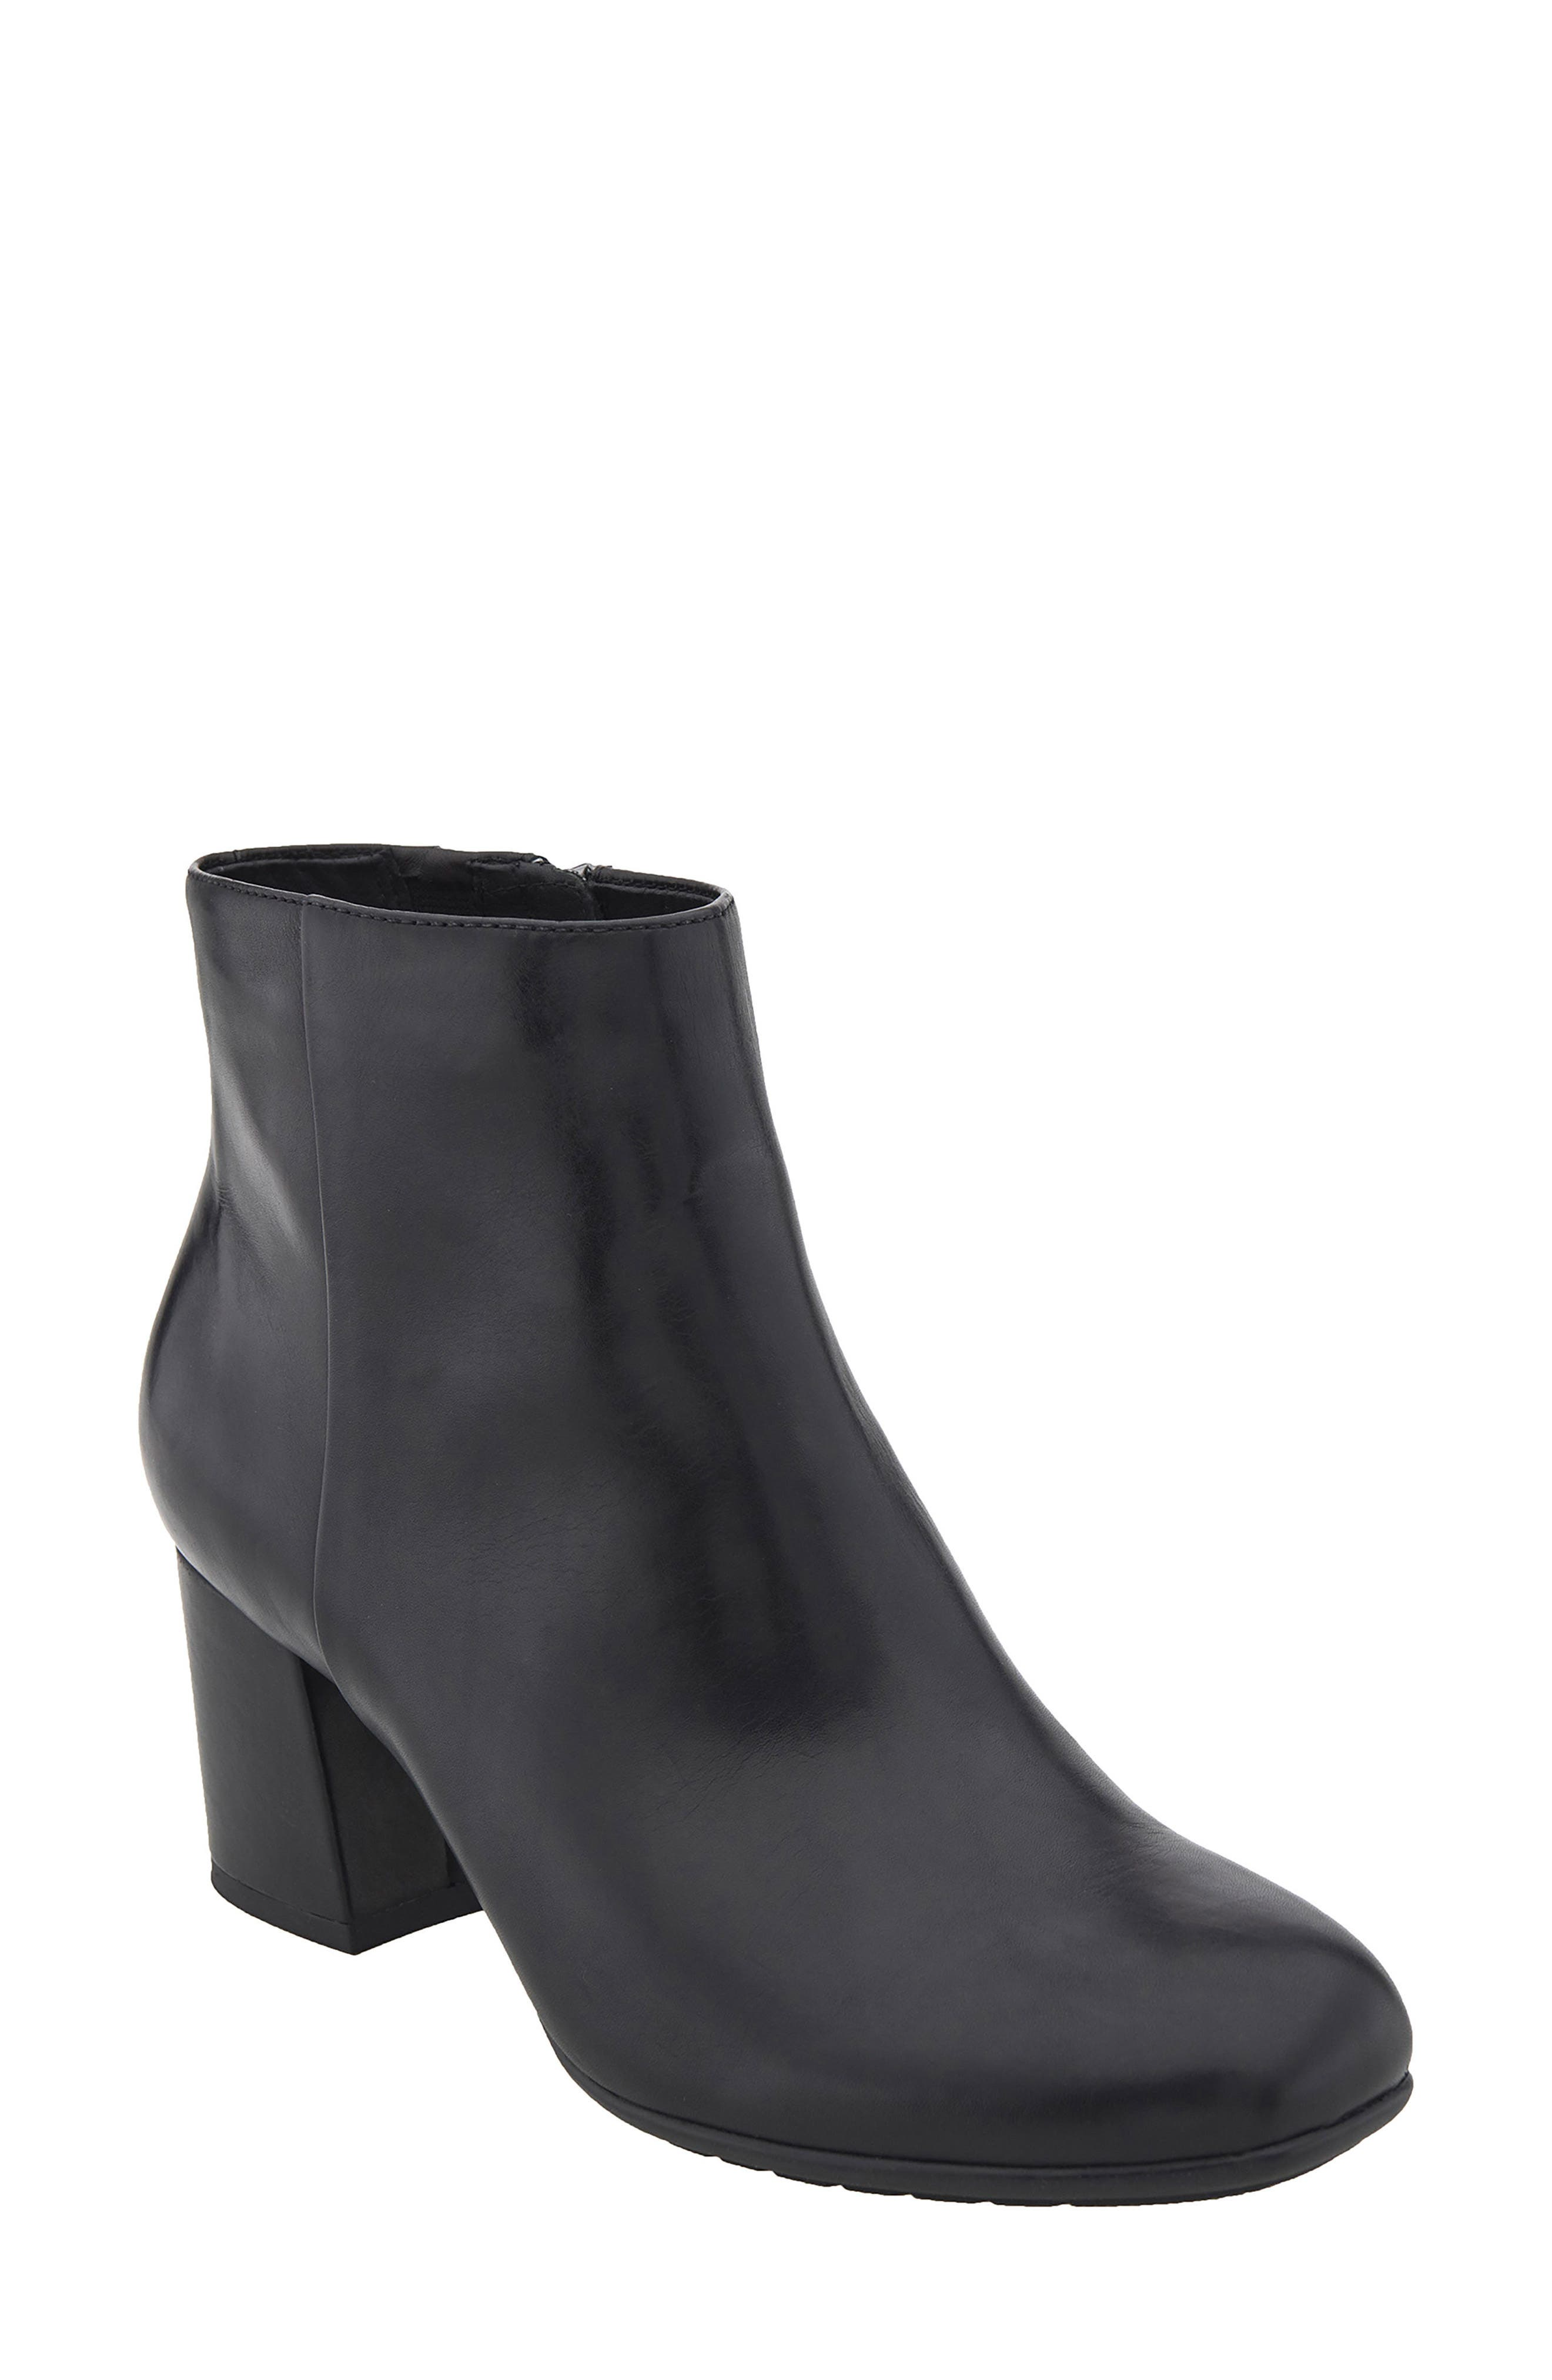 Apollo Bootie,                         Main,                         color, 001